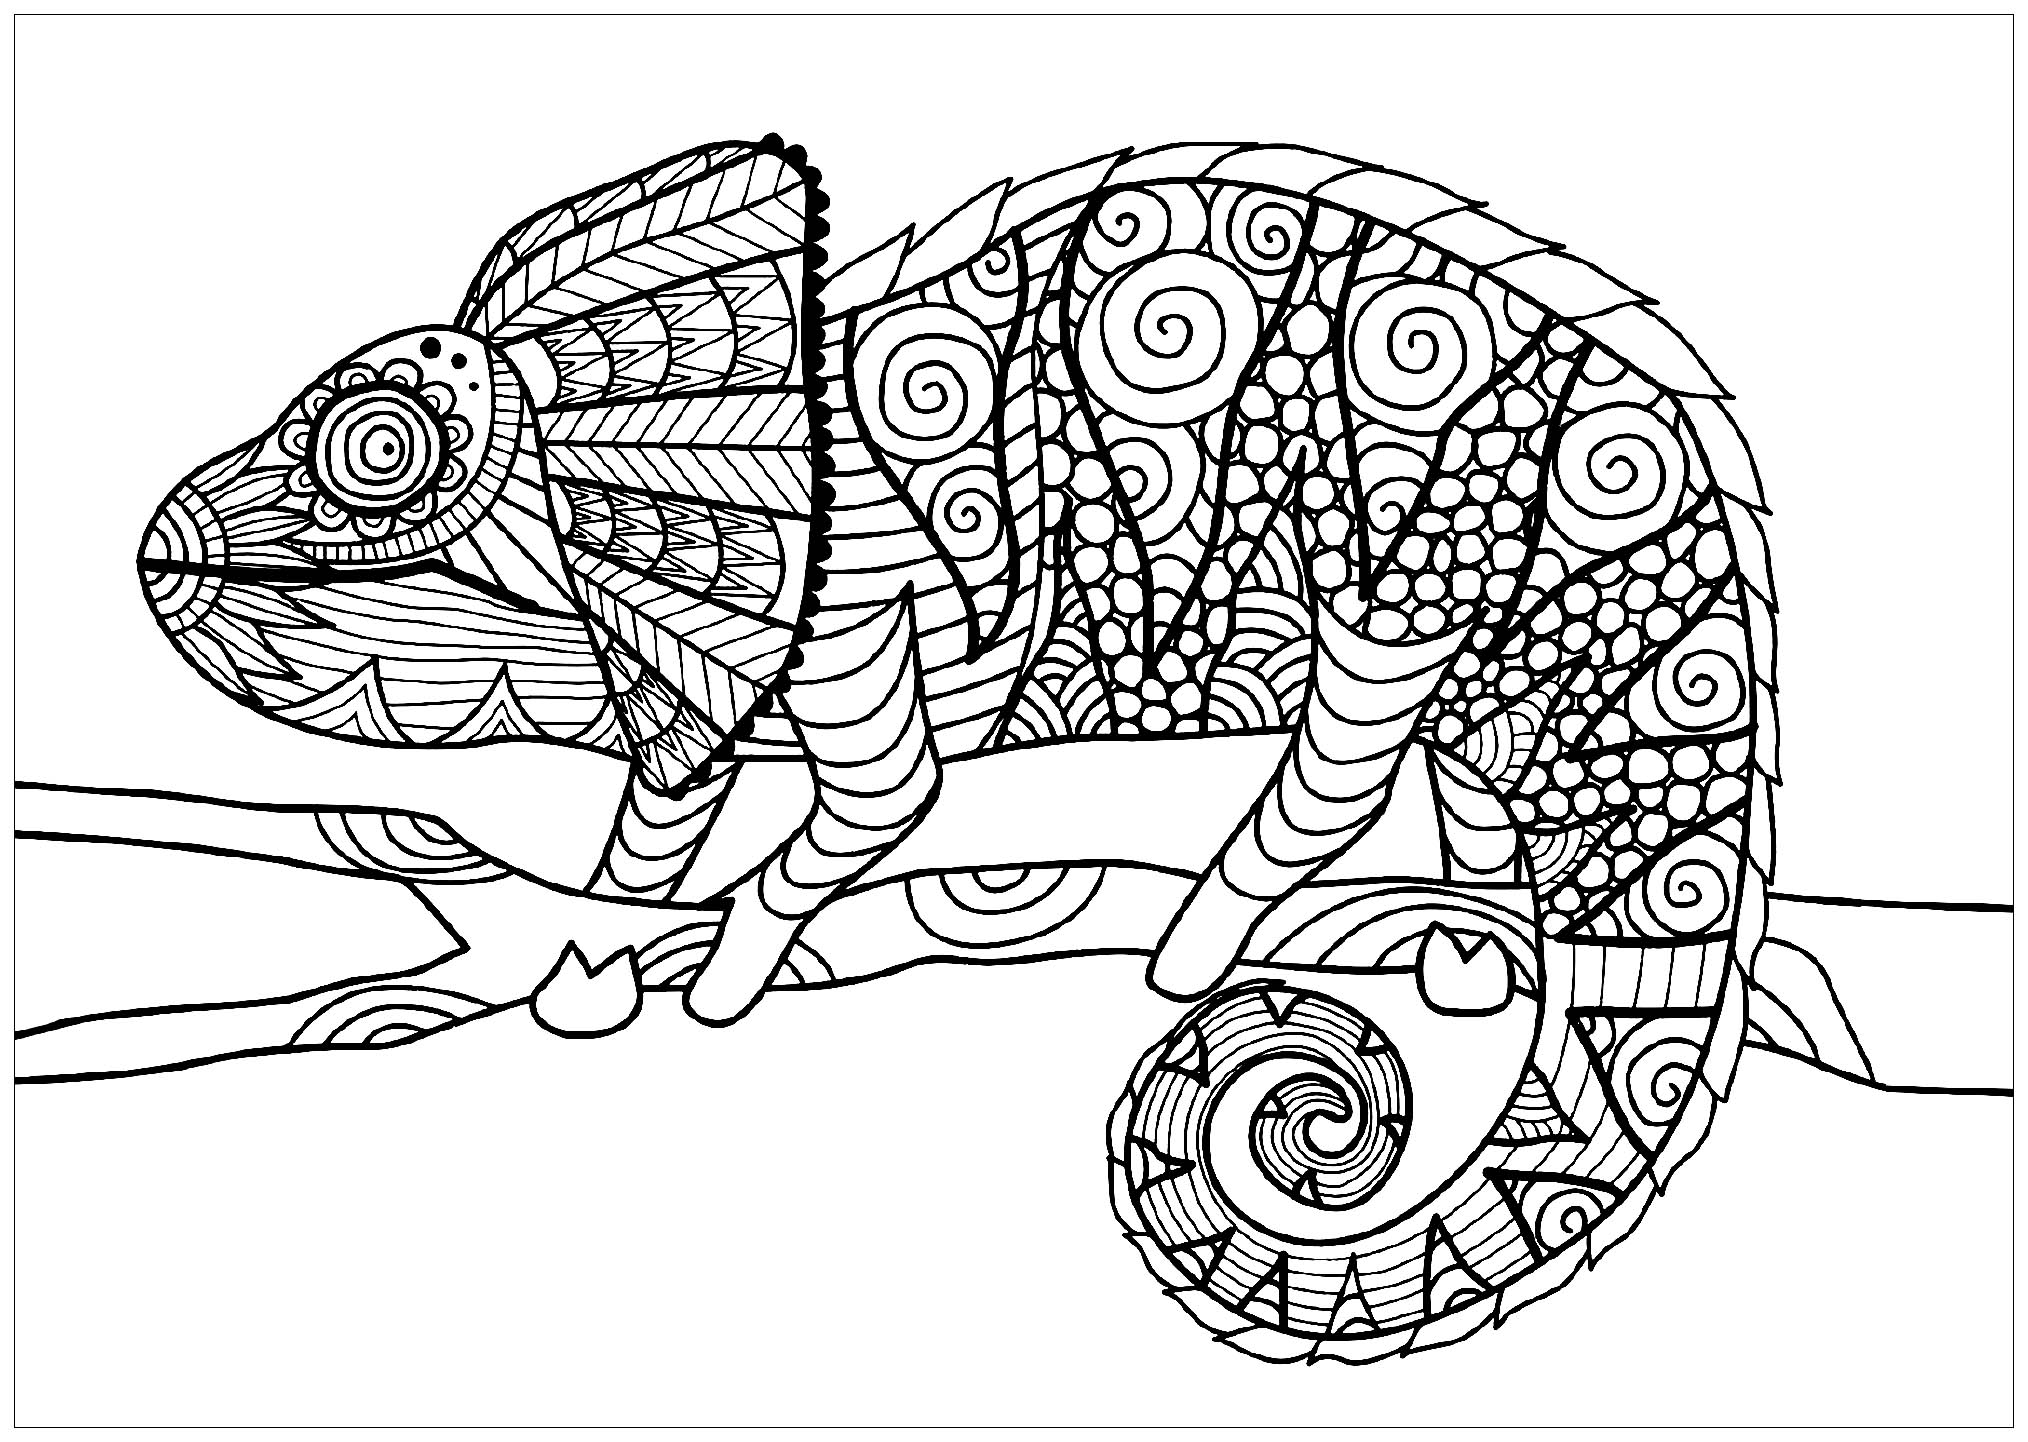 coloring pages for adults chameleon chameleon adult colouring page colouring in sheets art chameleon pages for adults coloring